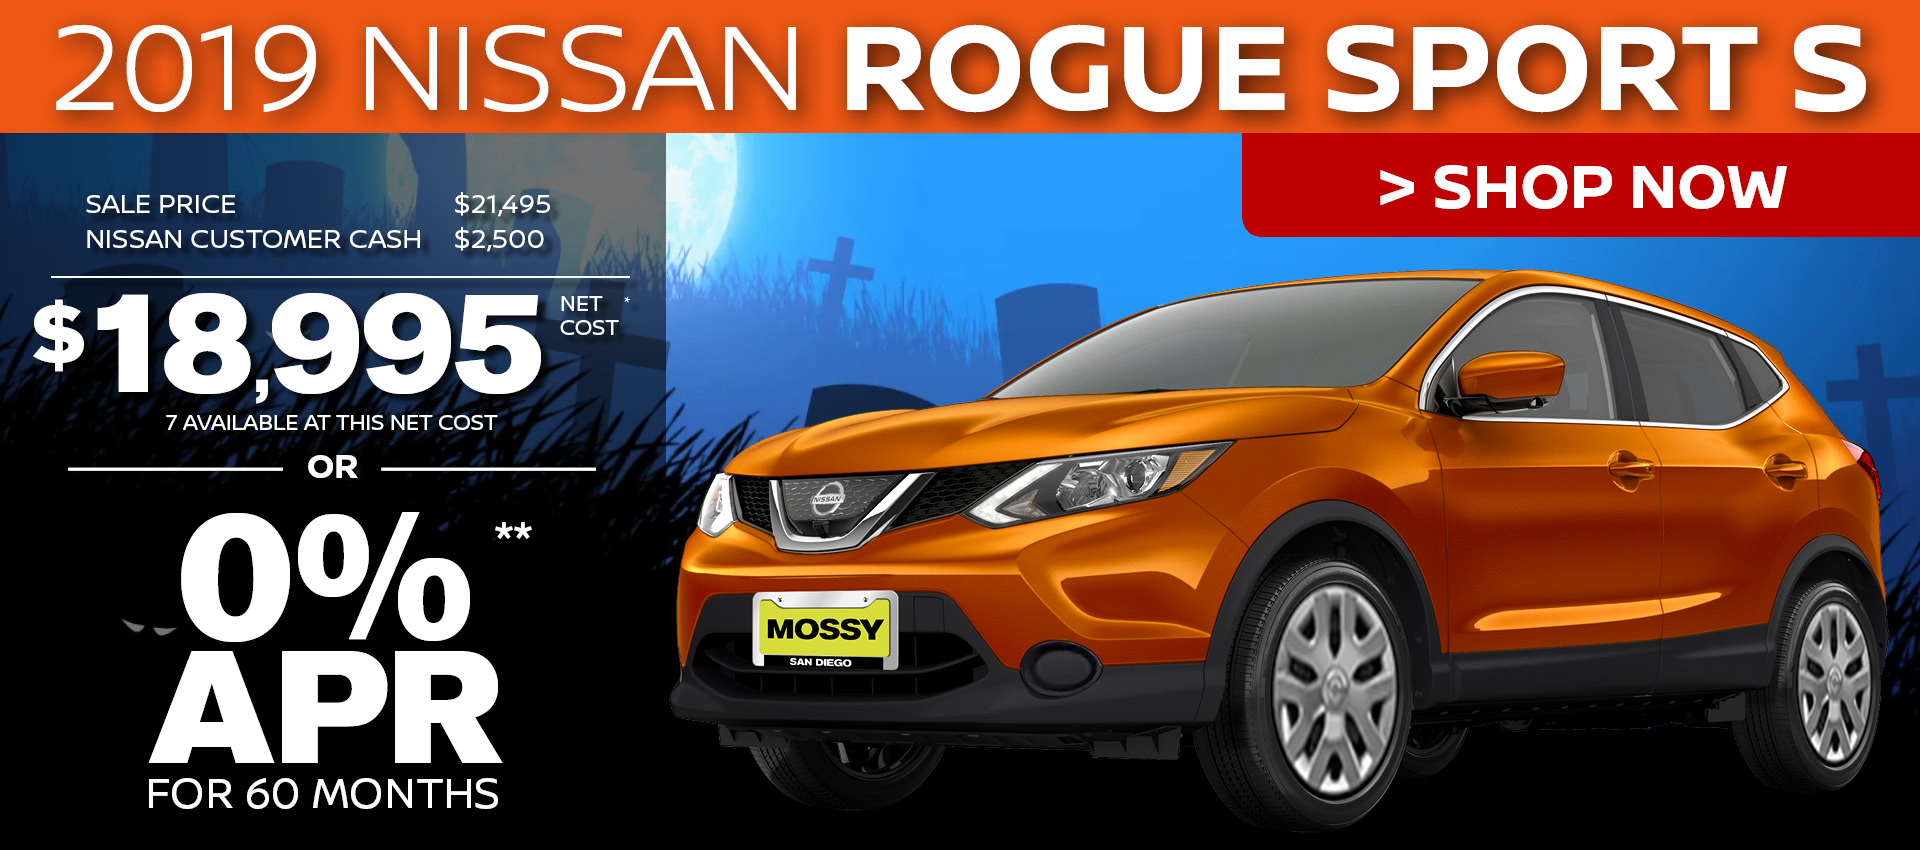 Mossy Nissan - Rogue Sport $18,995 Purchase HP